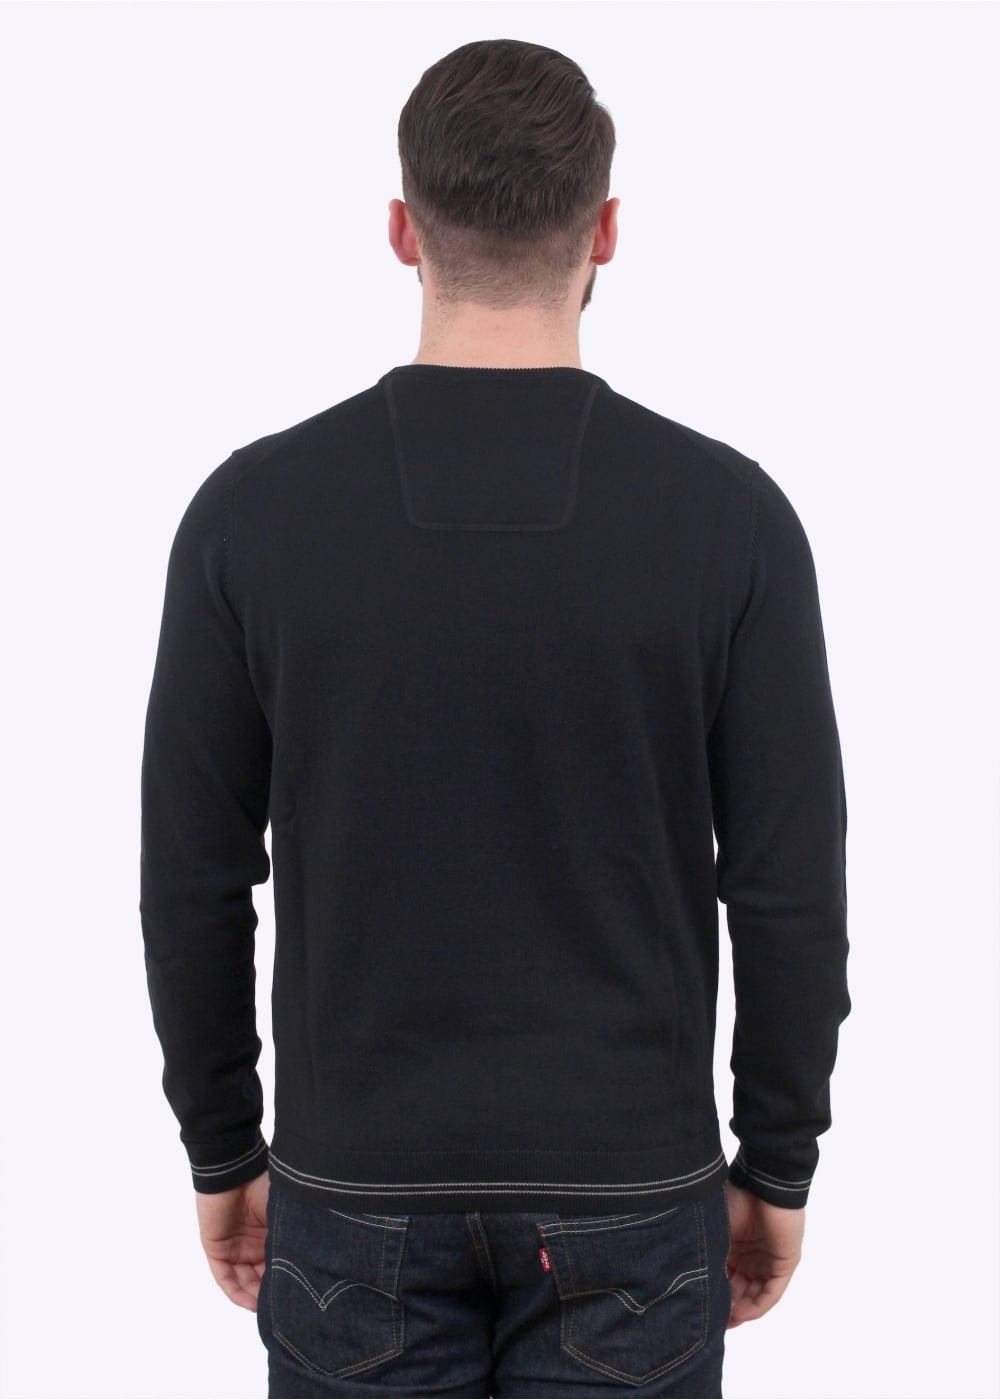 90a50441a BOSS Rime S17 Sweater - Black - Jumpers from Triads UK